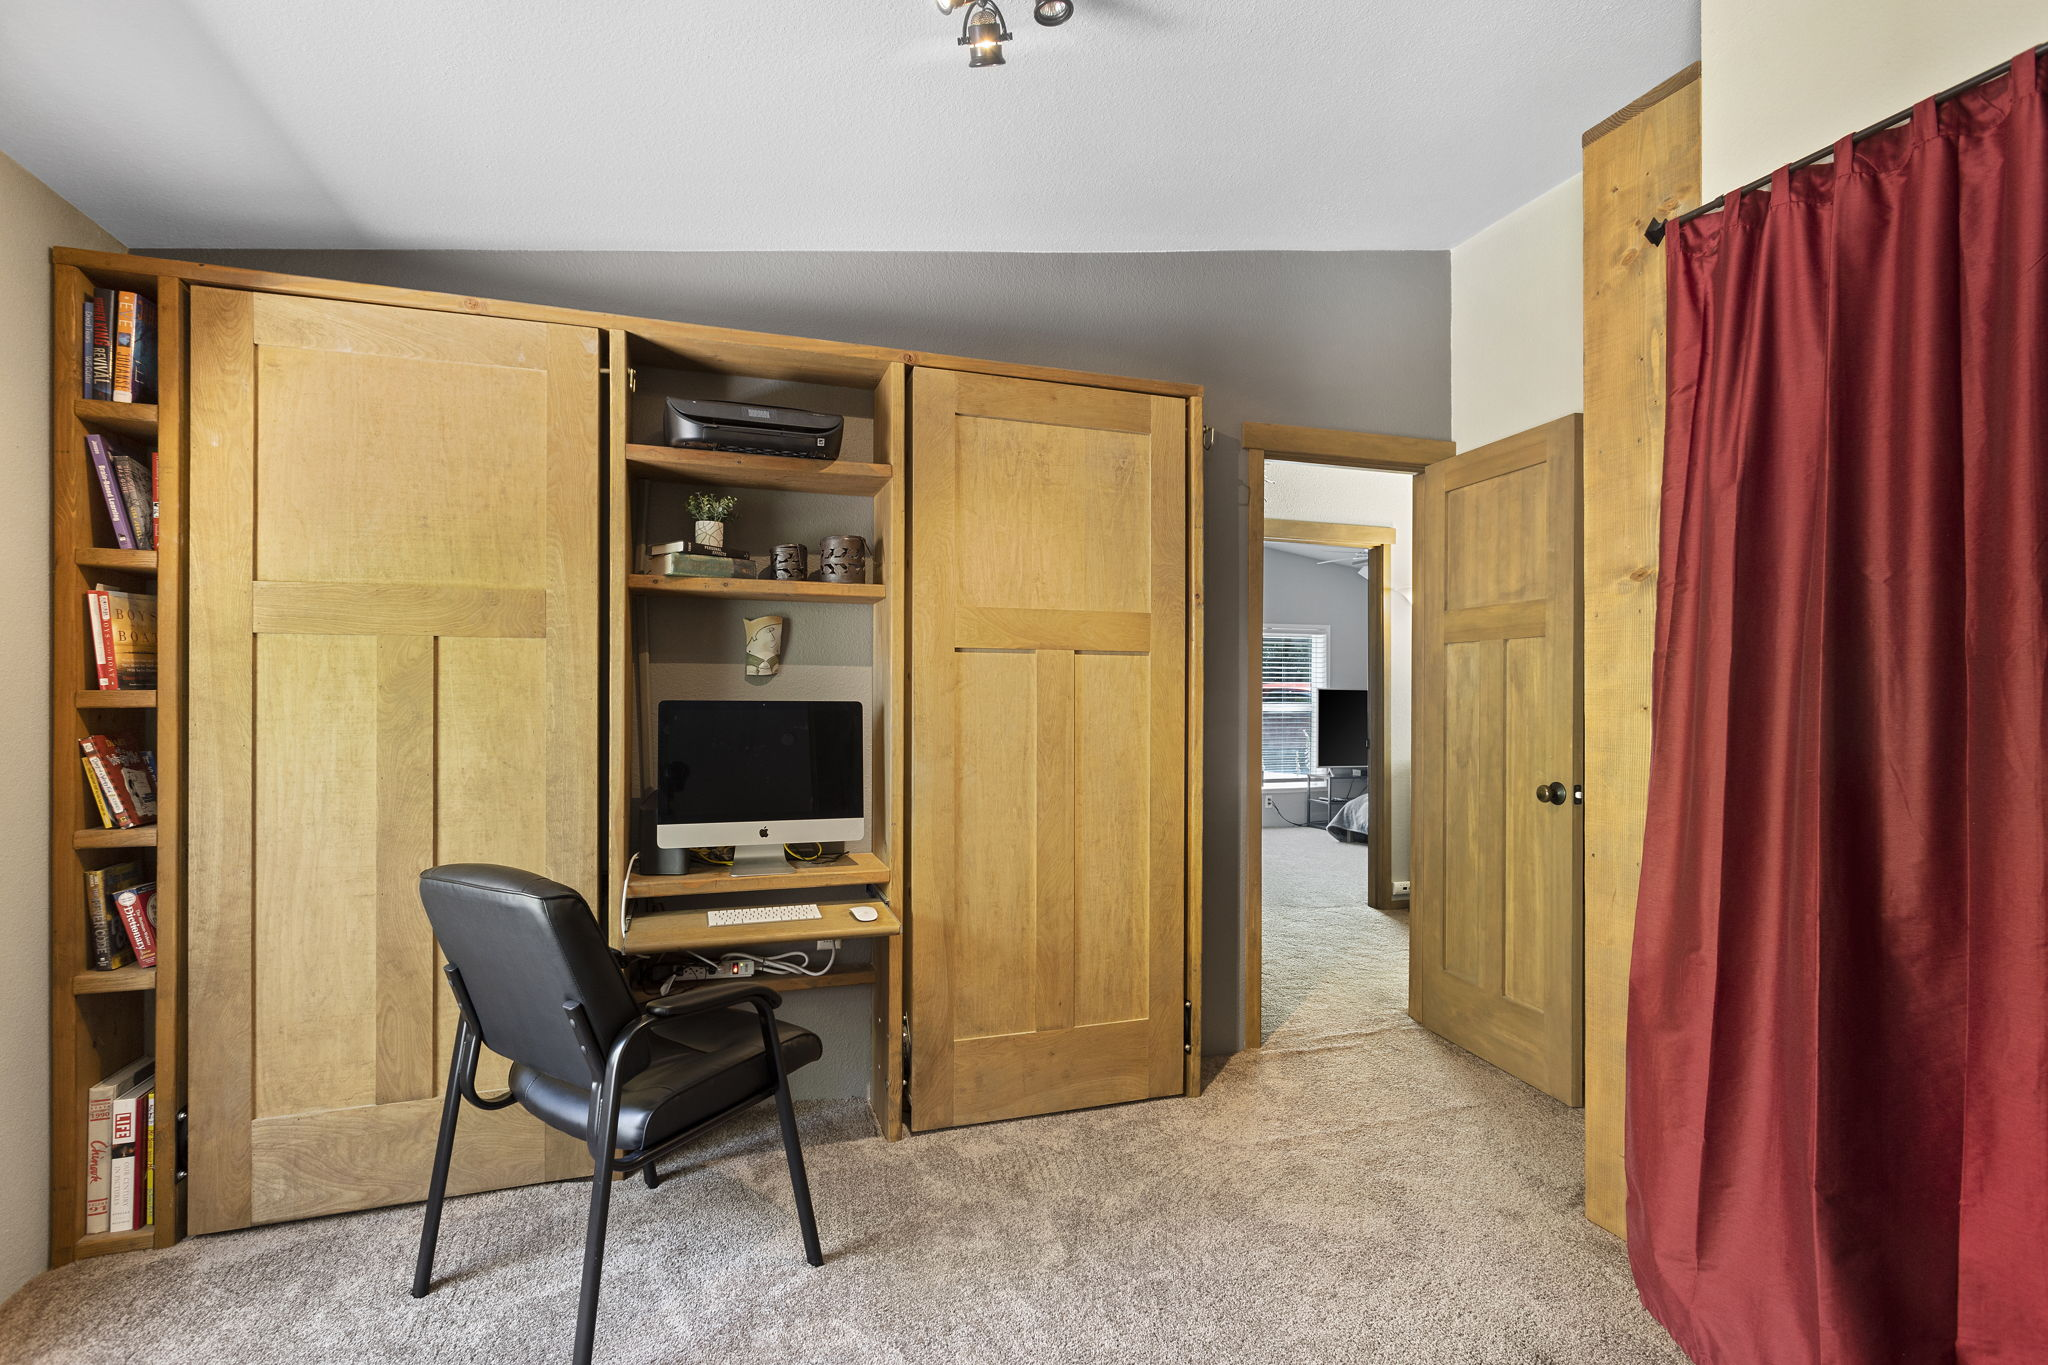 Custom made office and shelving unit to include 2 twin murphy beds!